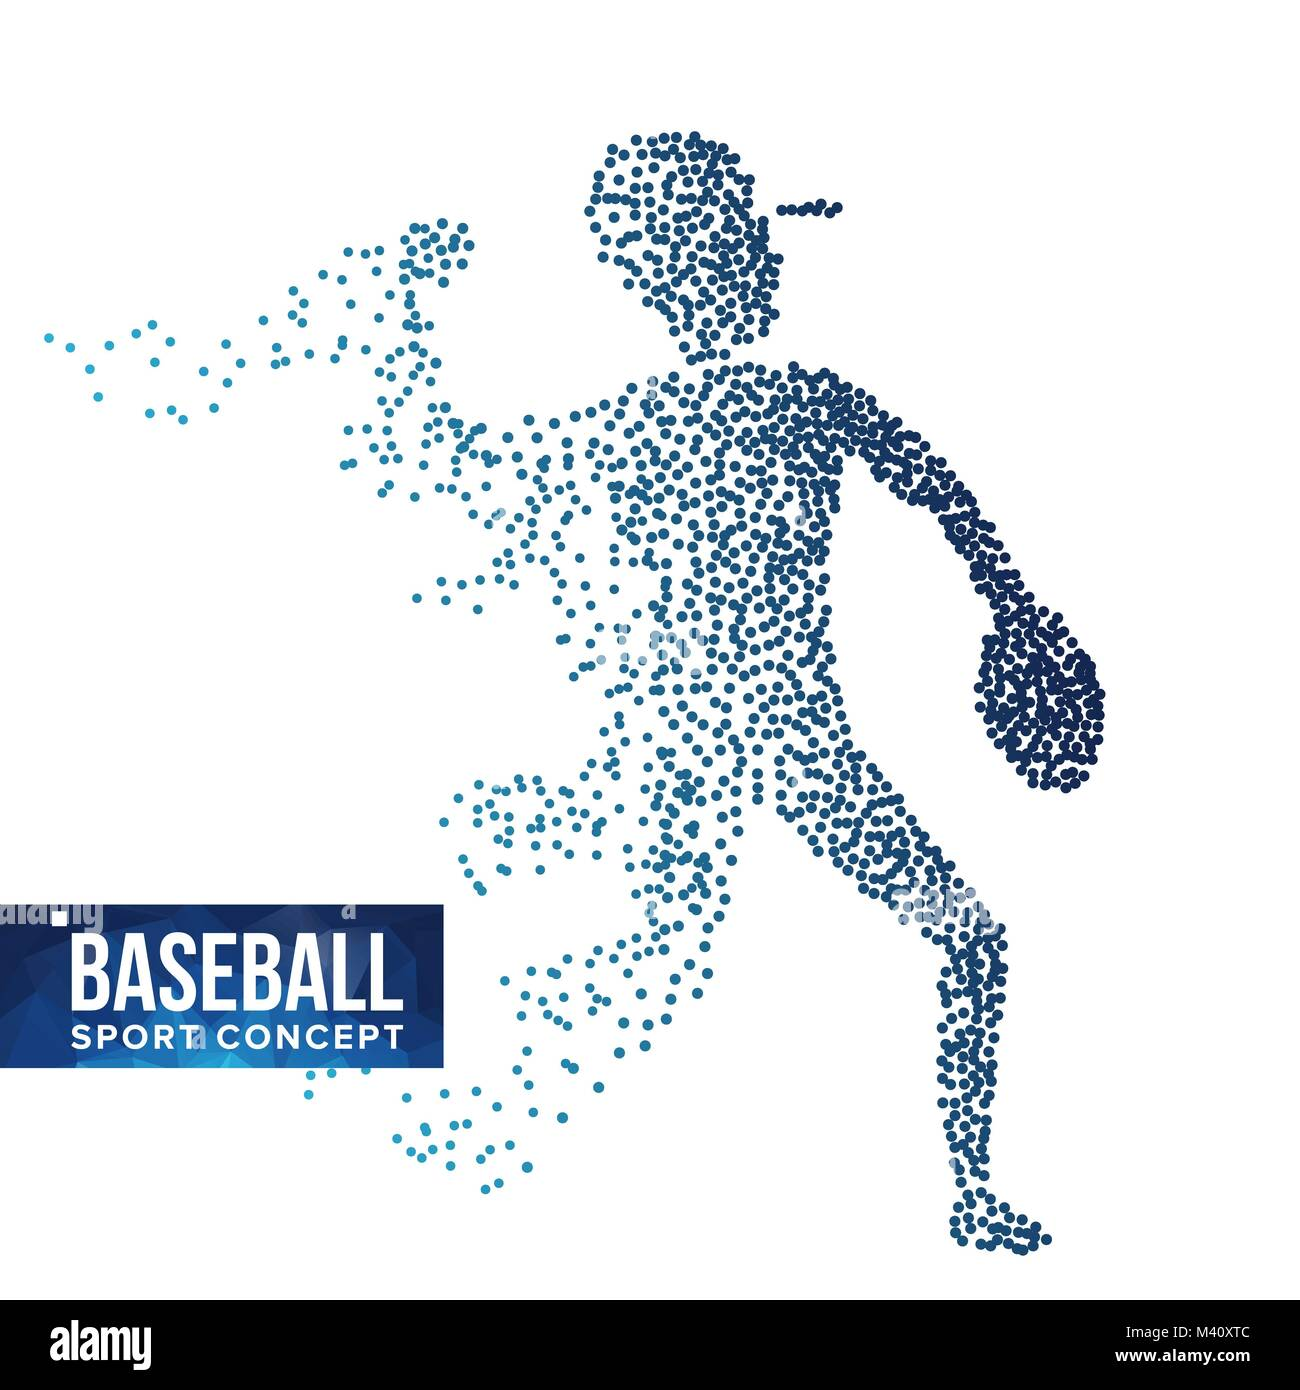 Baseball Player Silhouette Vector. Grunge Halftone Dots. Dynamic Baseball Athlete In Action. Flying Dotted Particles. Stock Vector